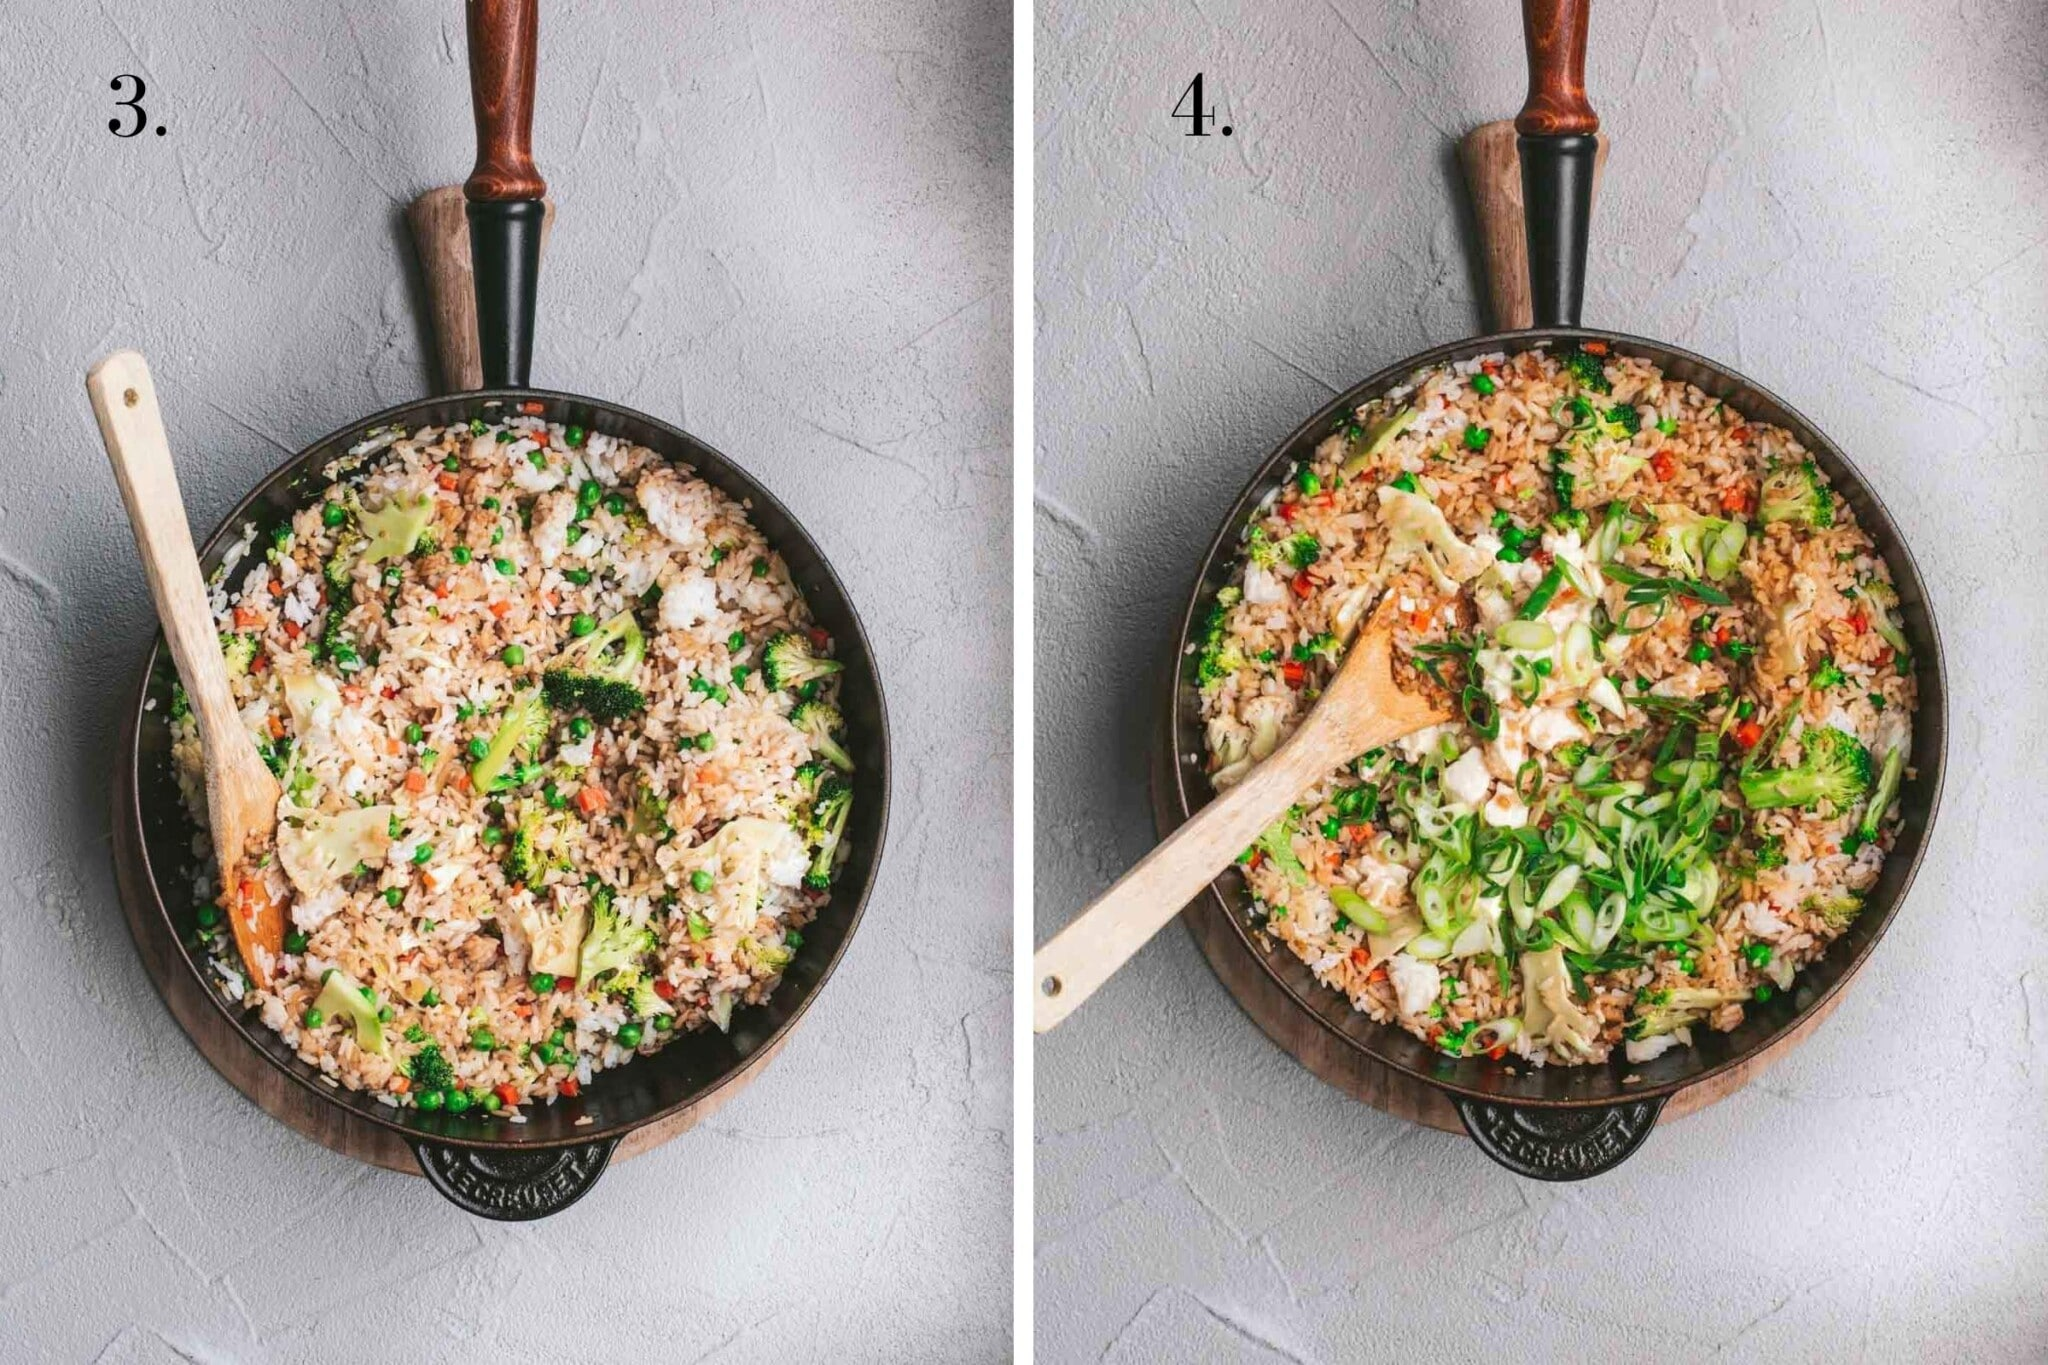 Two food images with fried rice cooking in a pan.